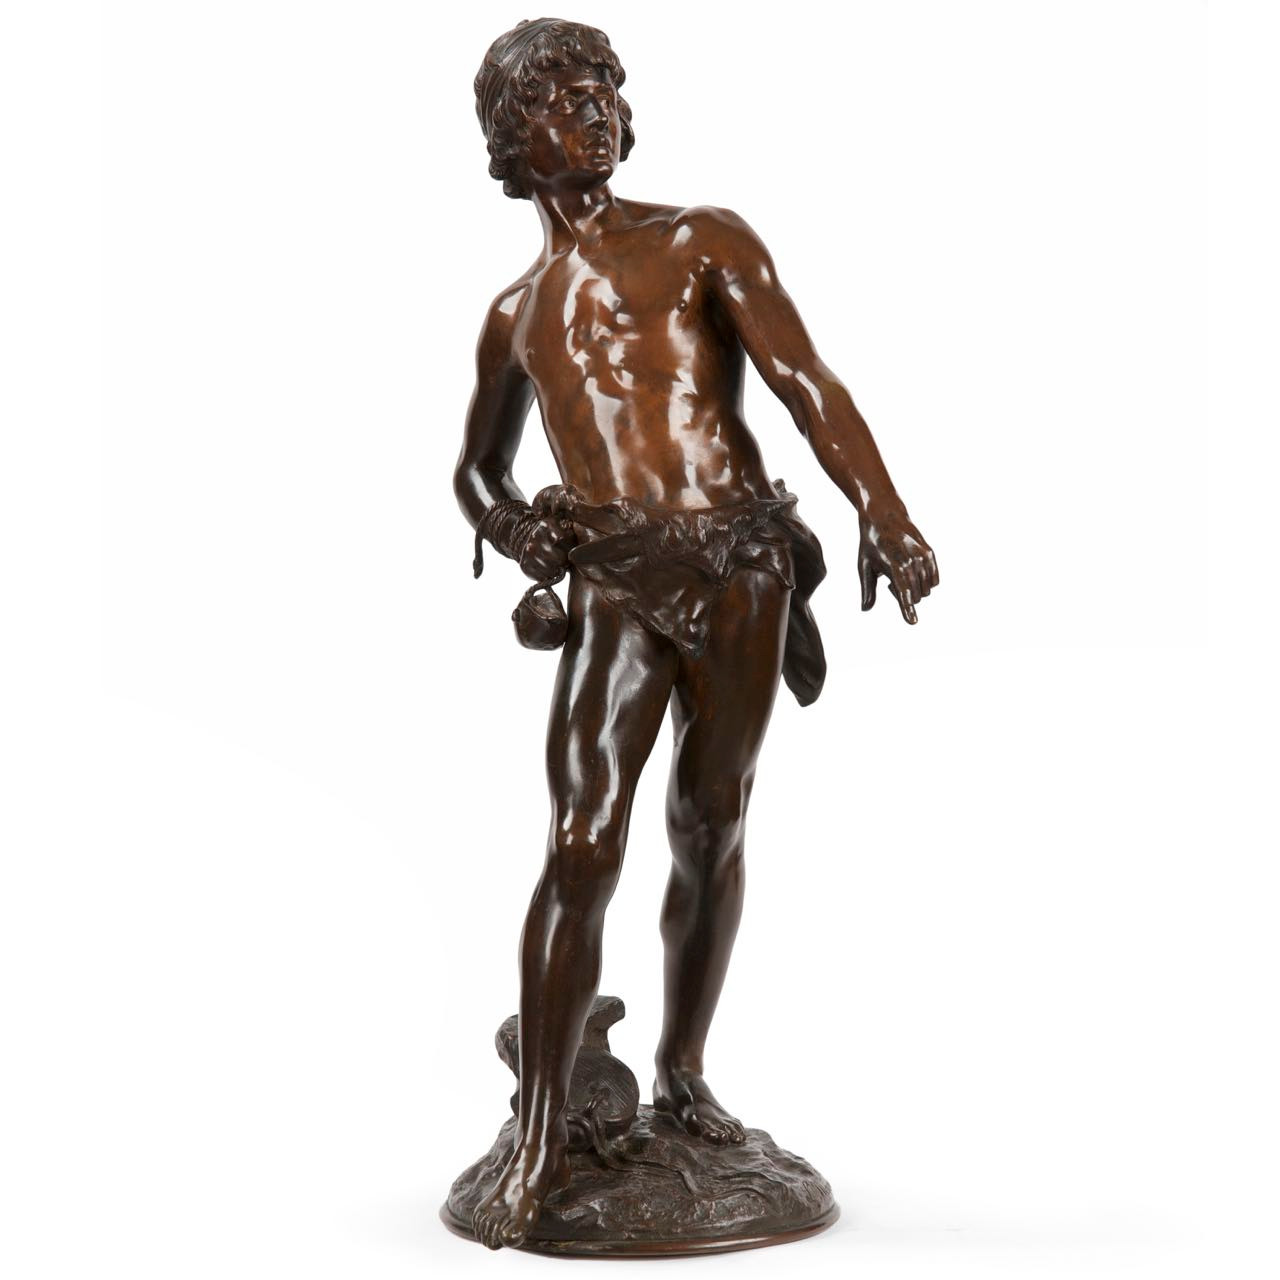 b851f8fc453 French Bronze Sculpture of David by Louis Auguste Moreau